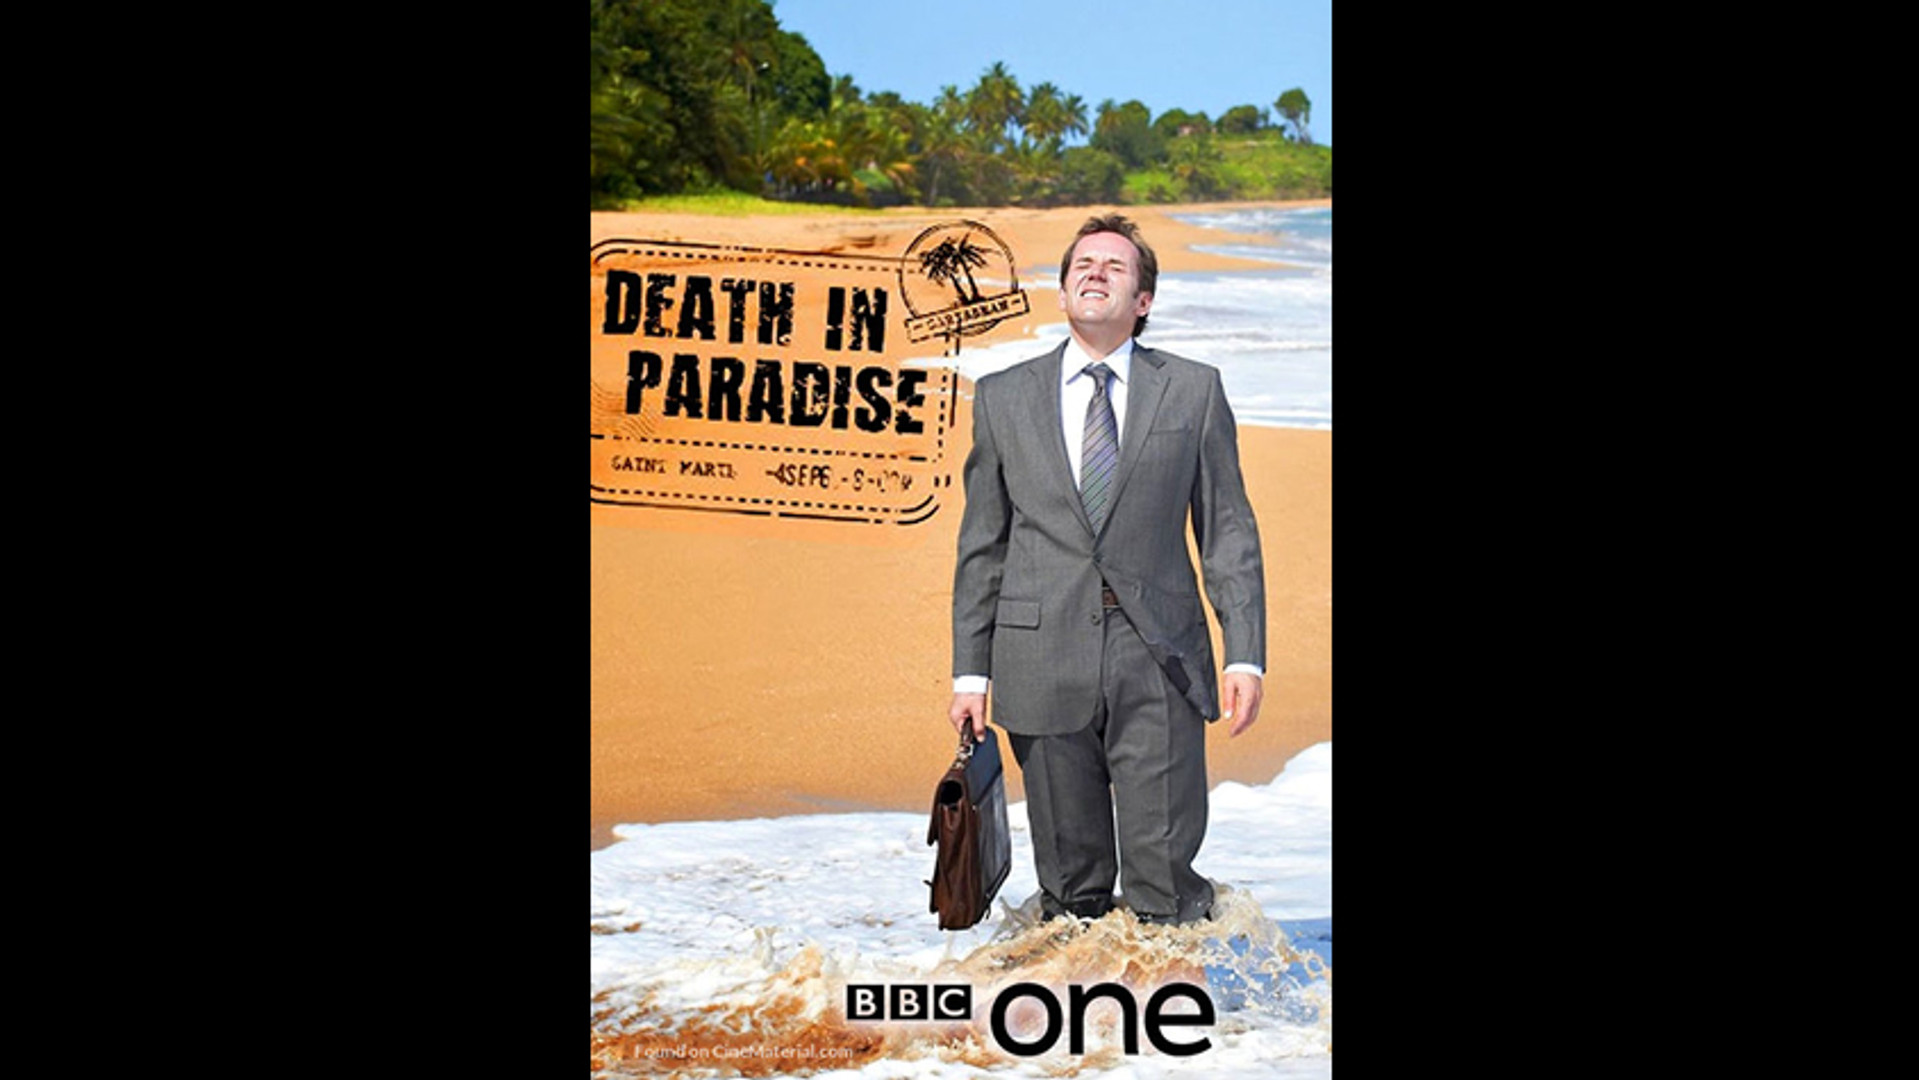 british-director-of-photography-death-in-paradise